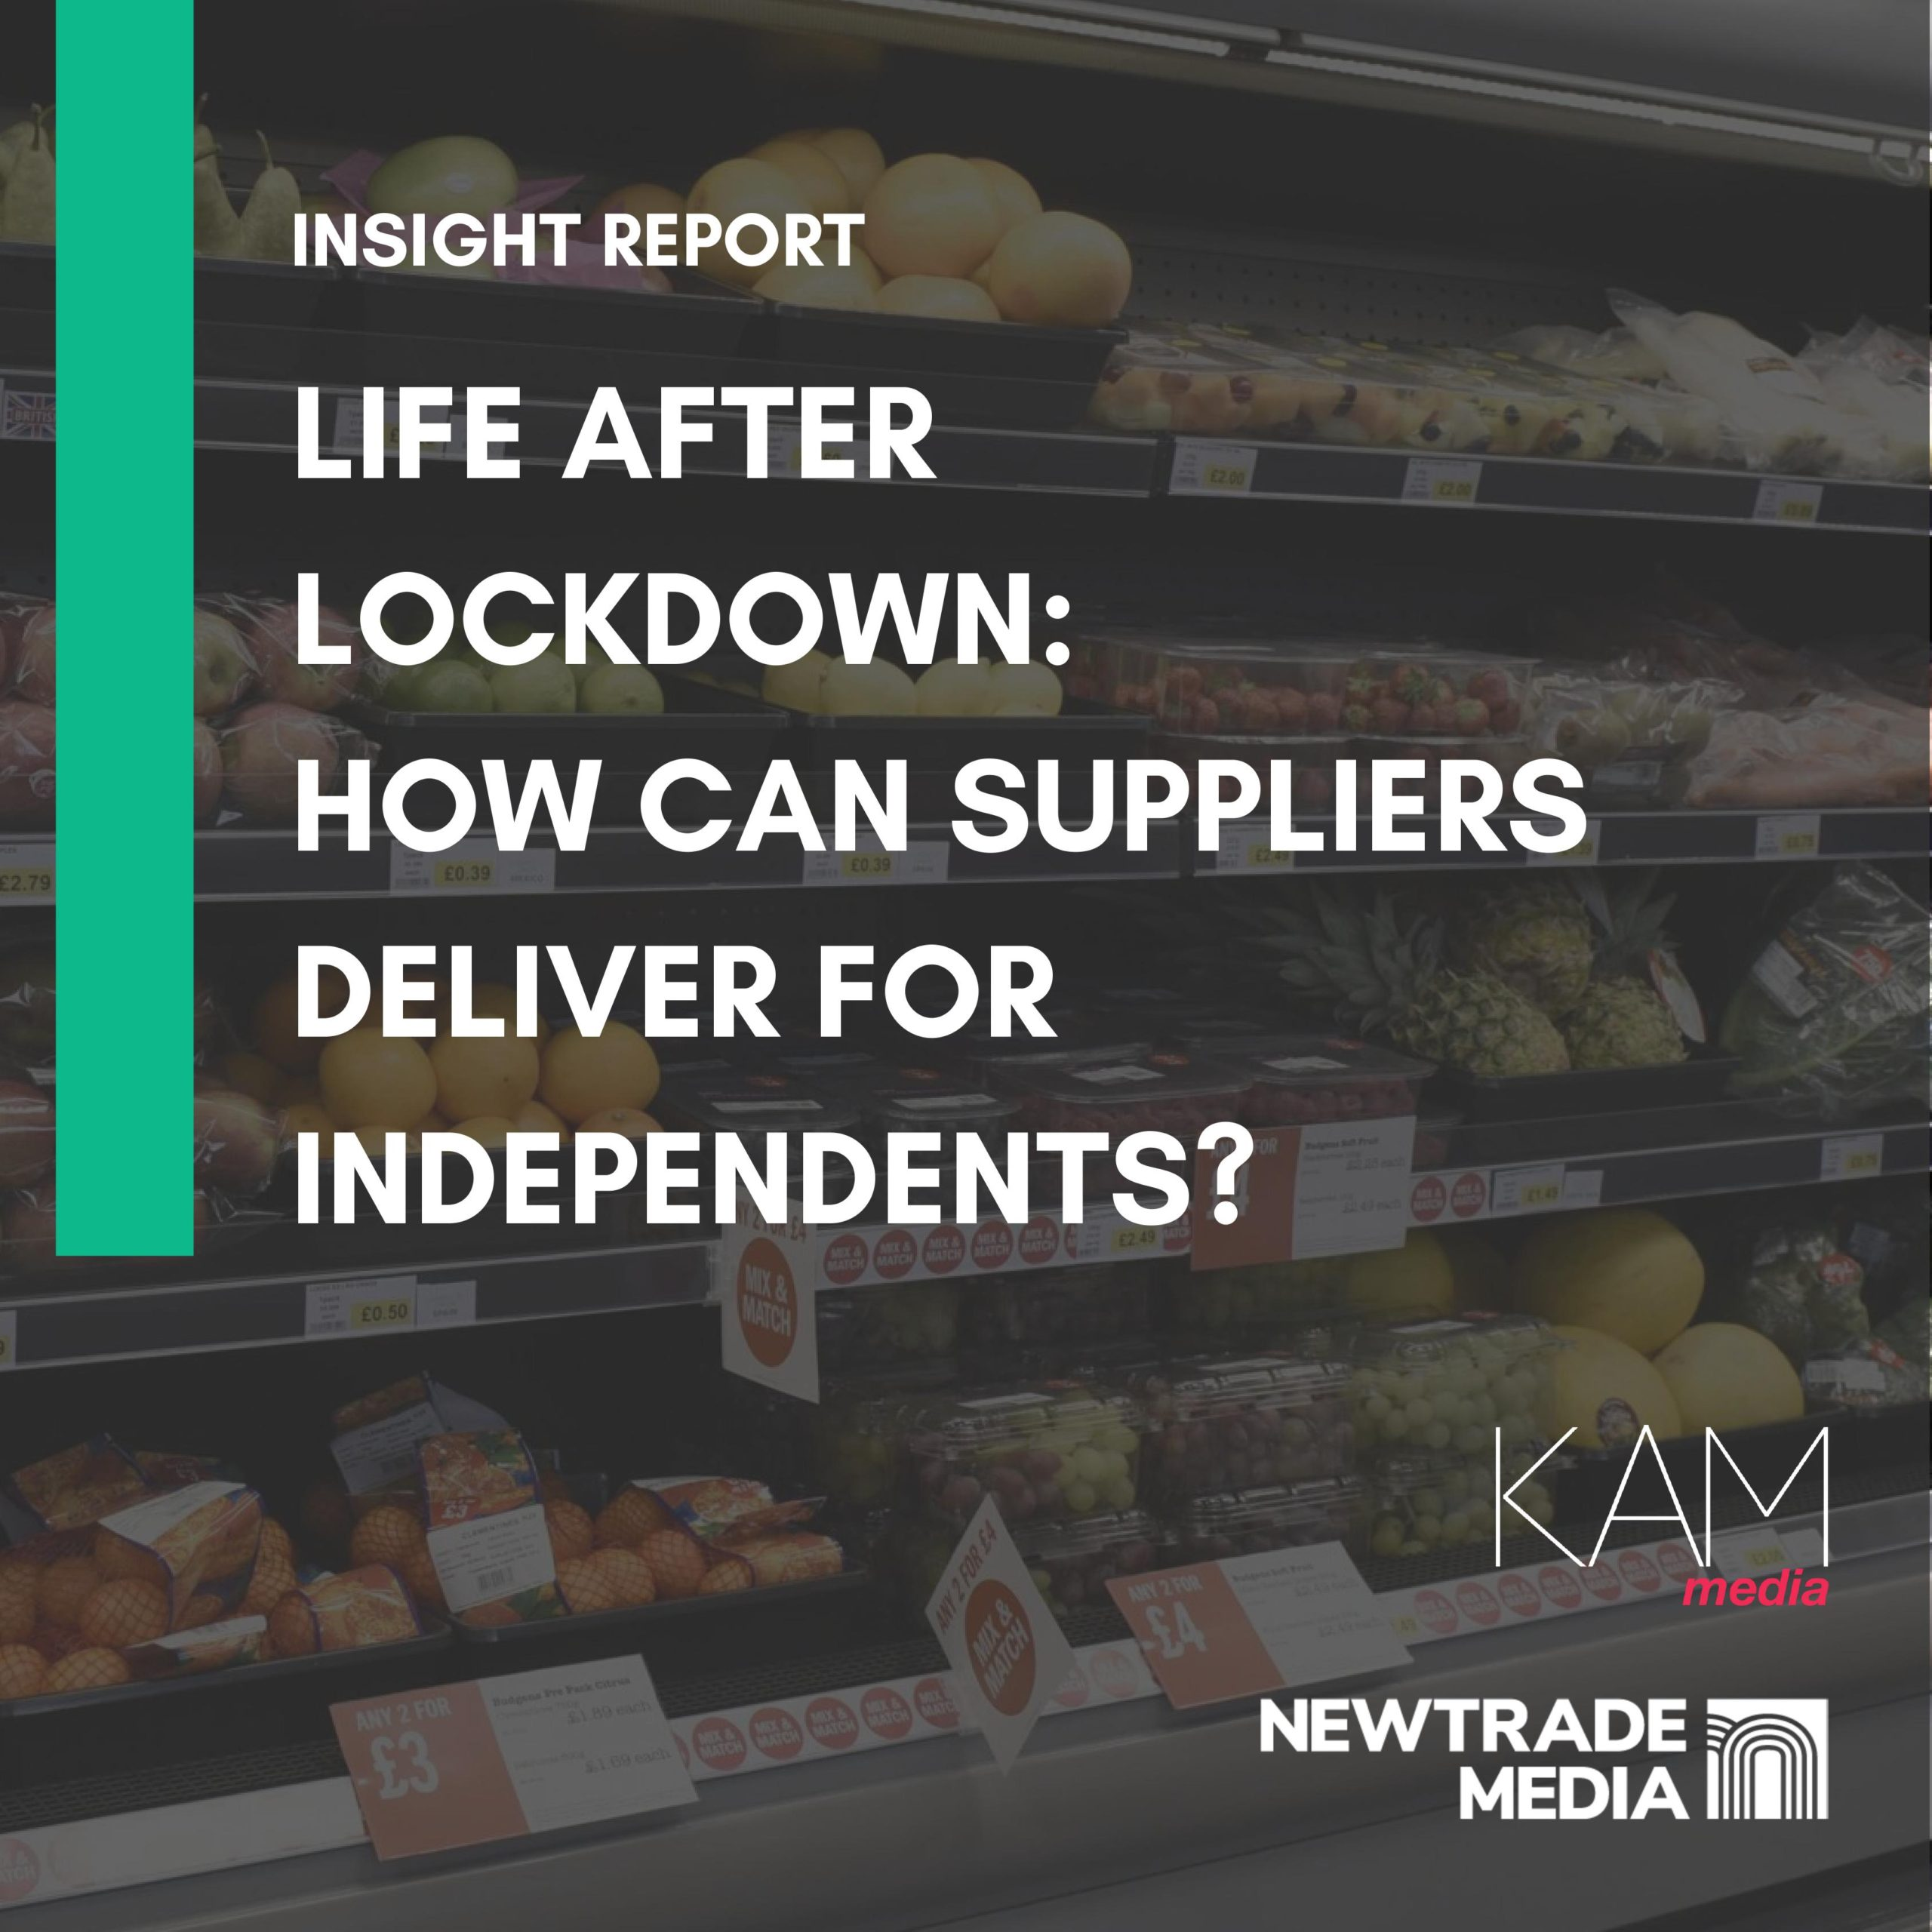 Newtrade and KAM Media life after lockdown